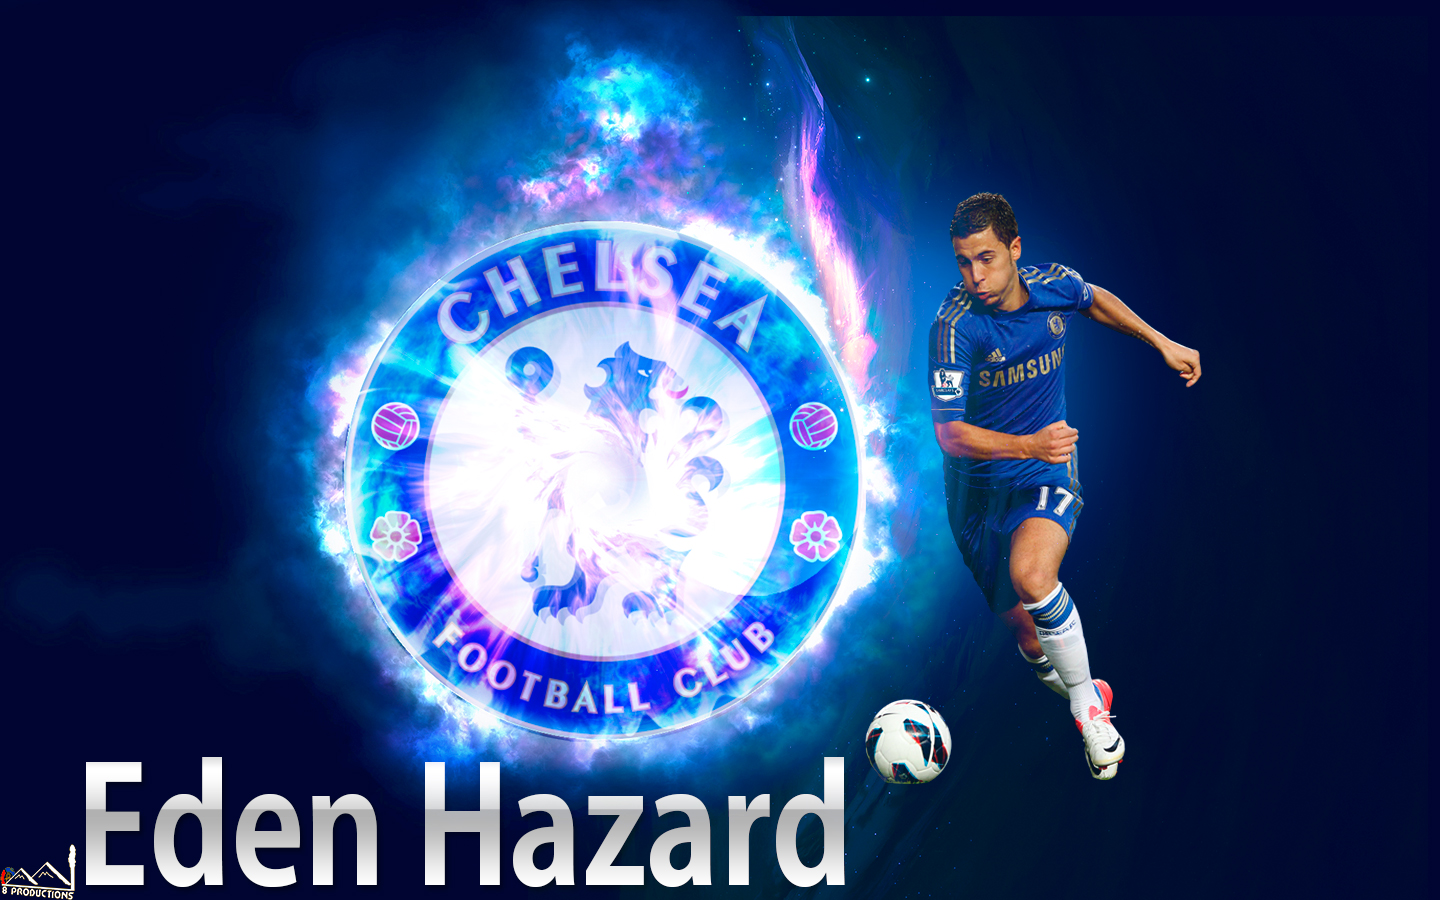 Chelsea Hazard Wallpapers Free On Wallpaper Hd 1440